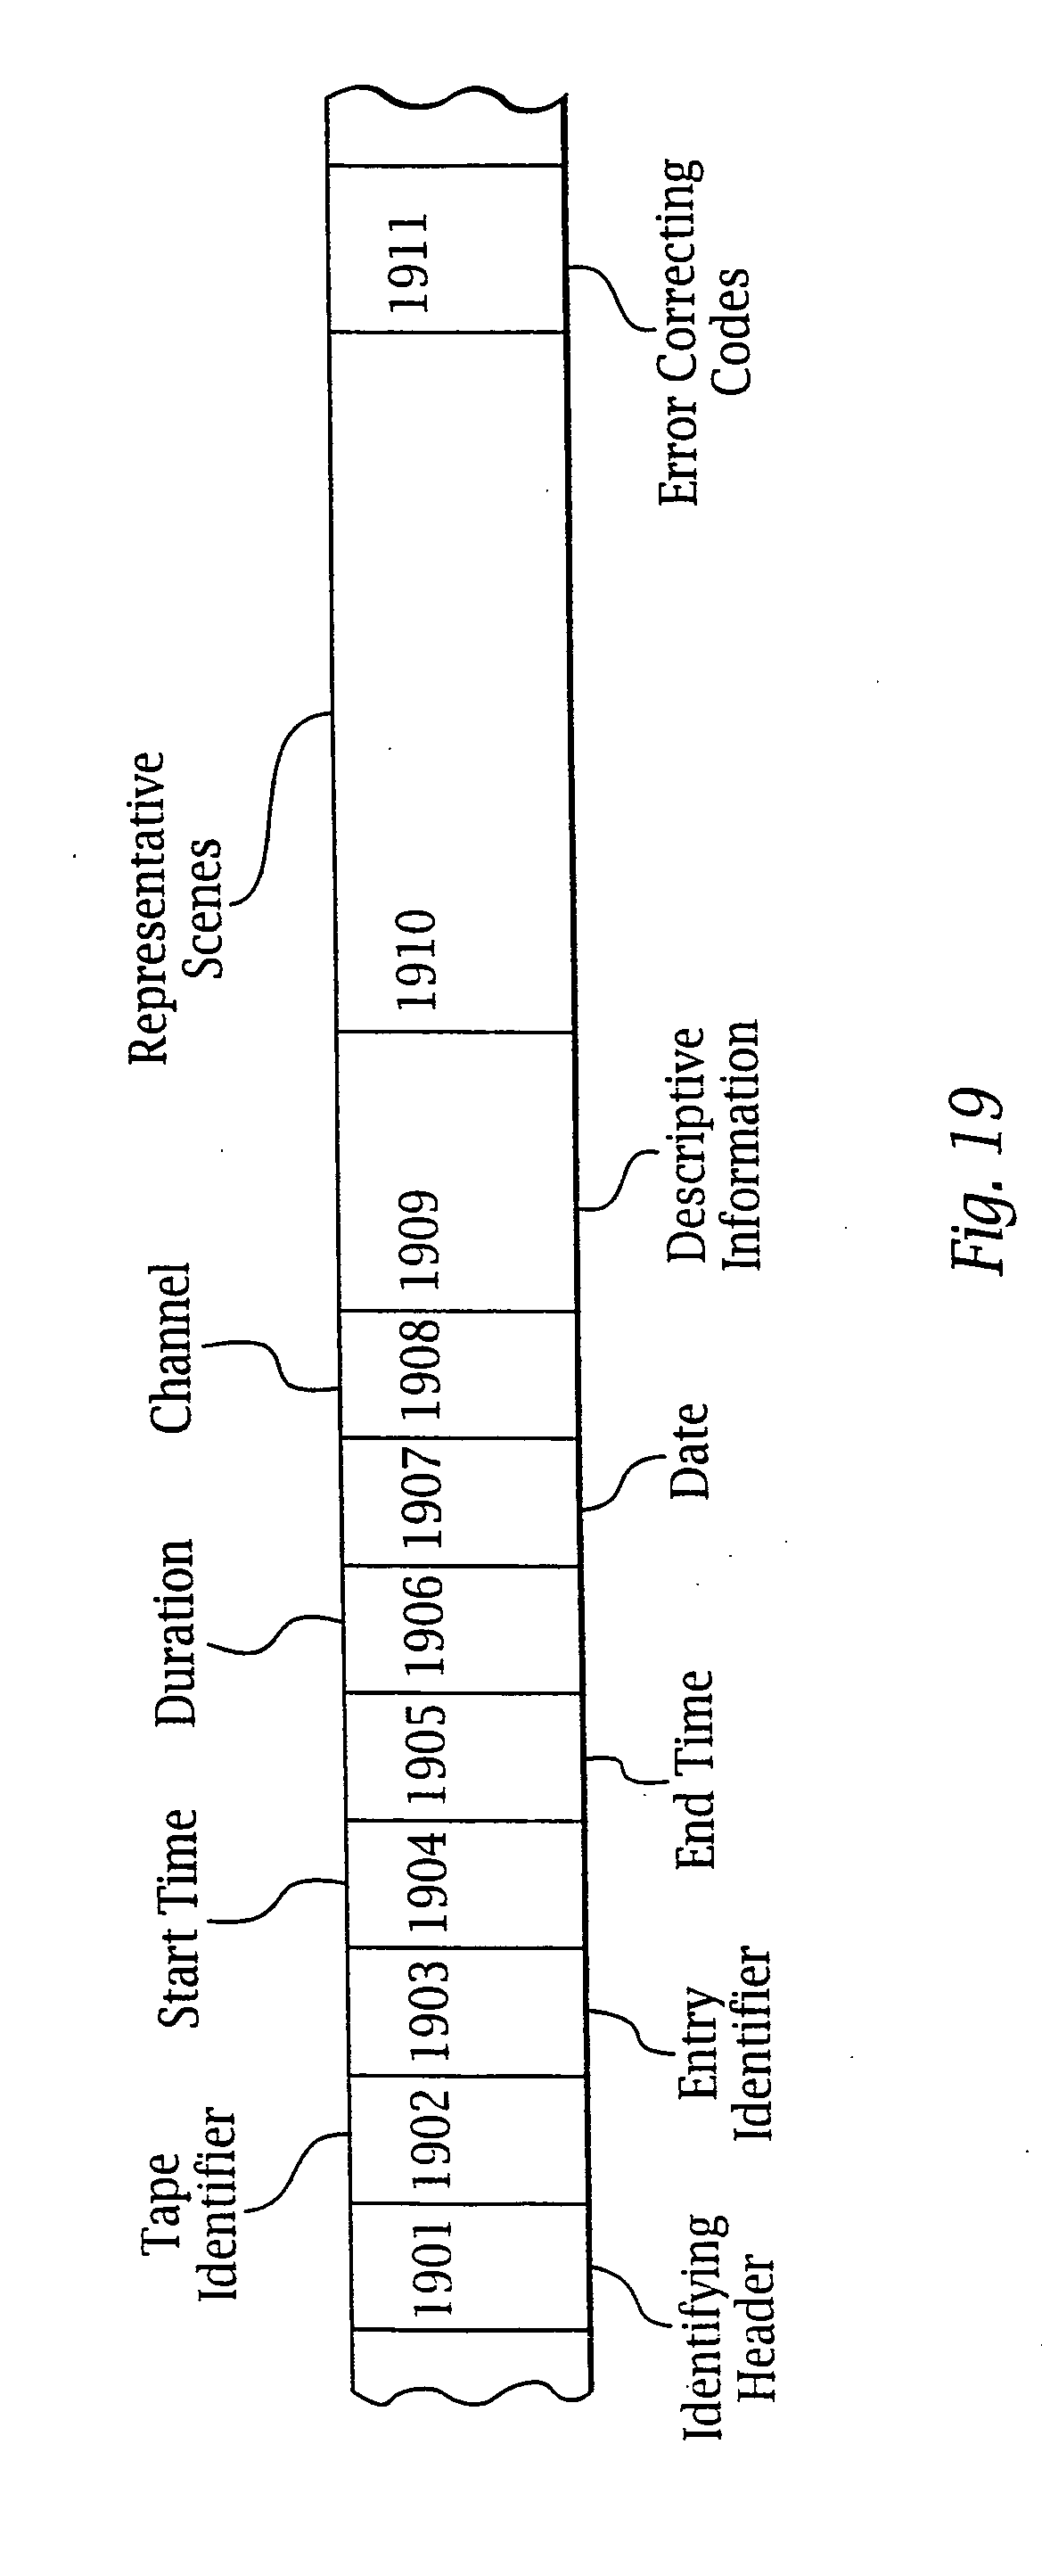 patent us internet appliance system and method